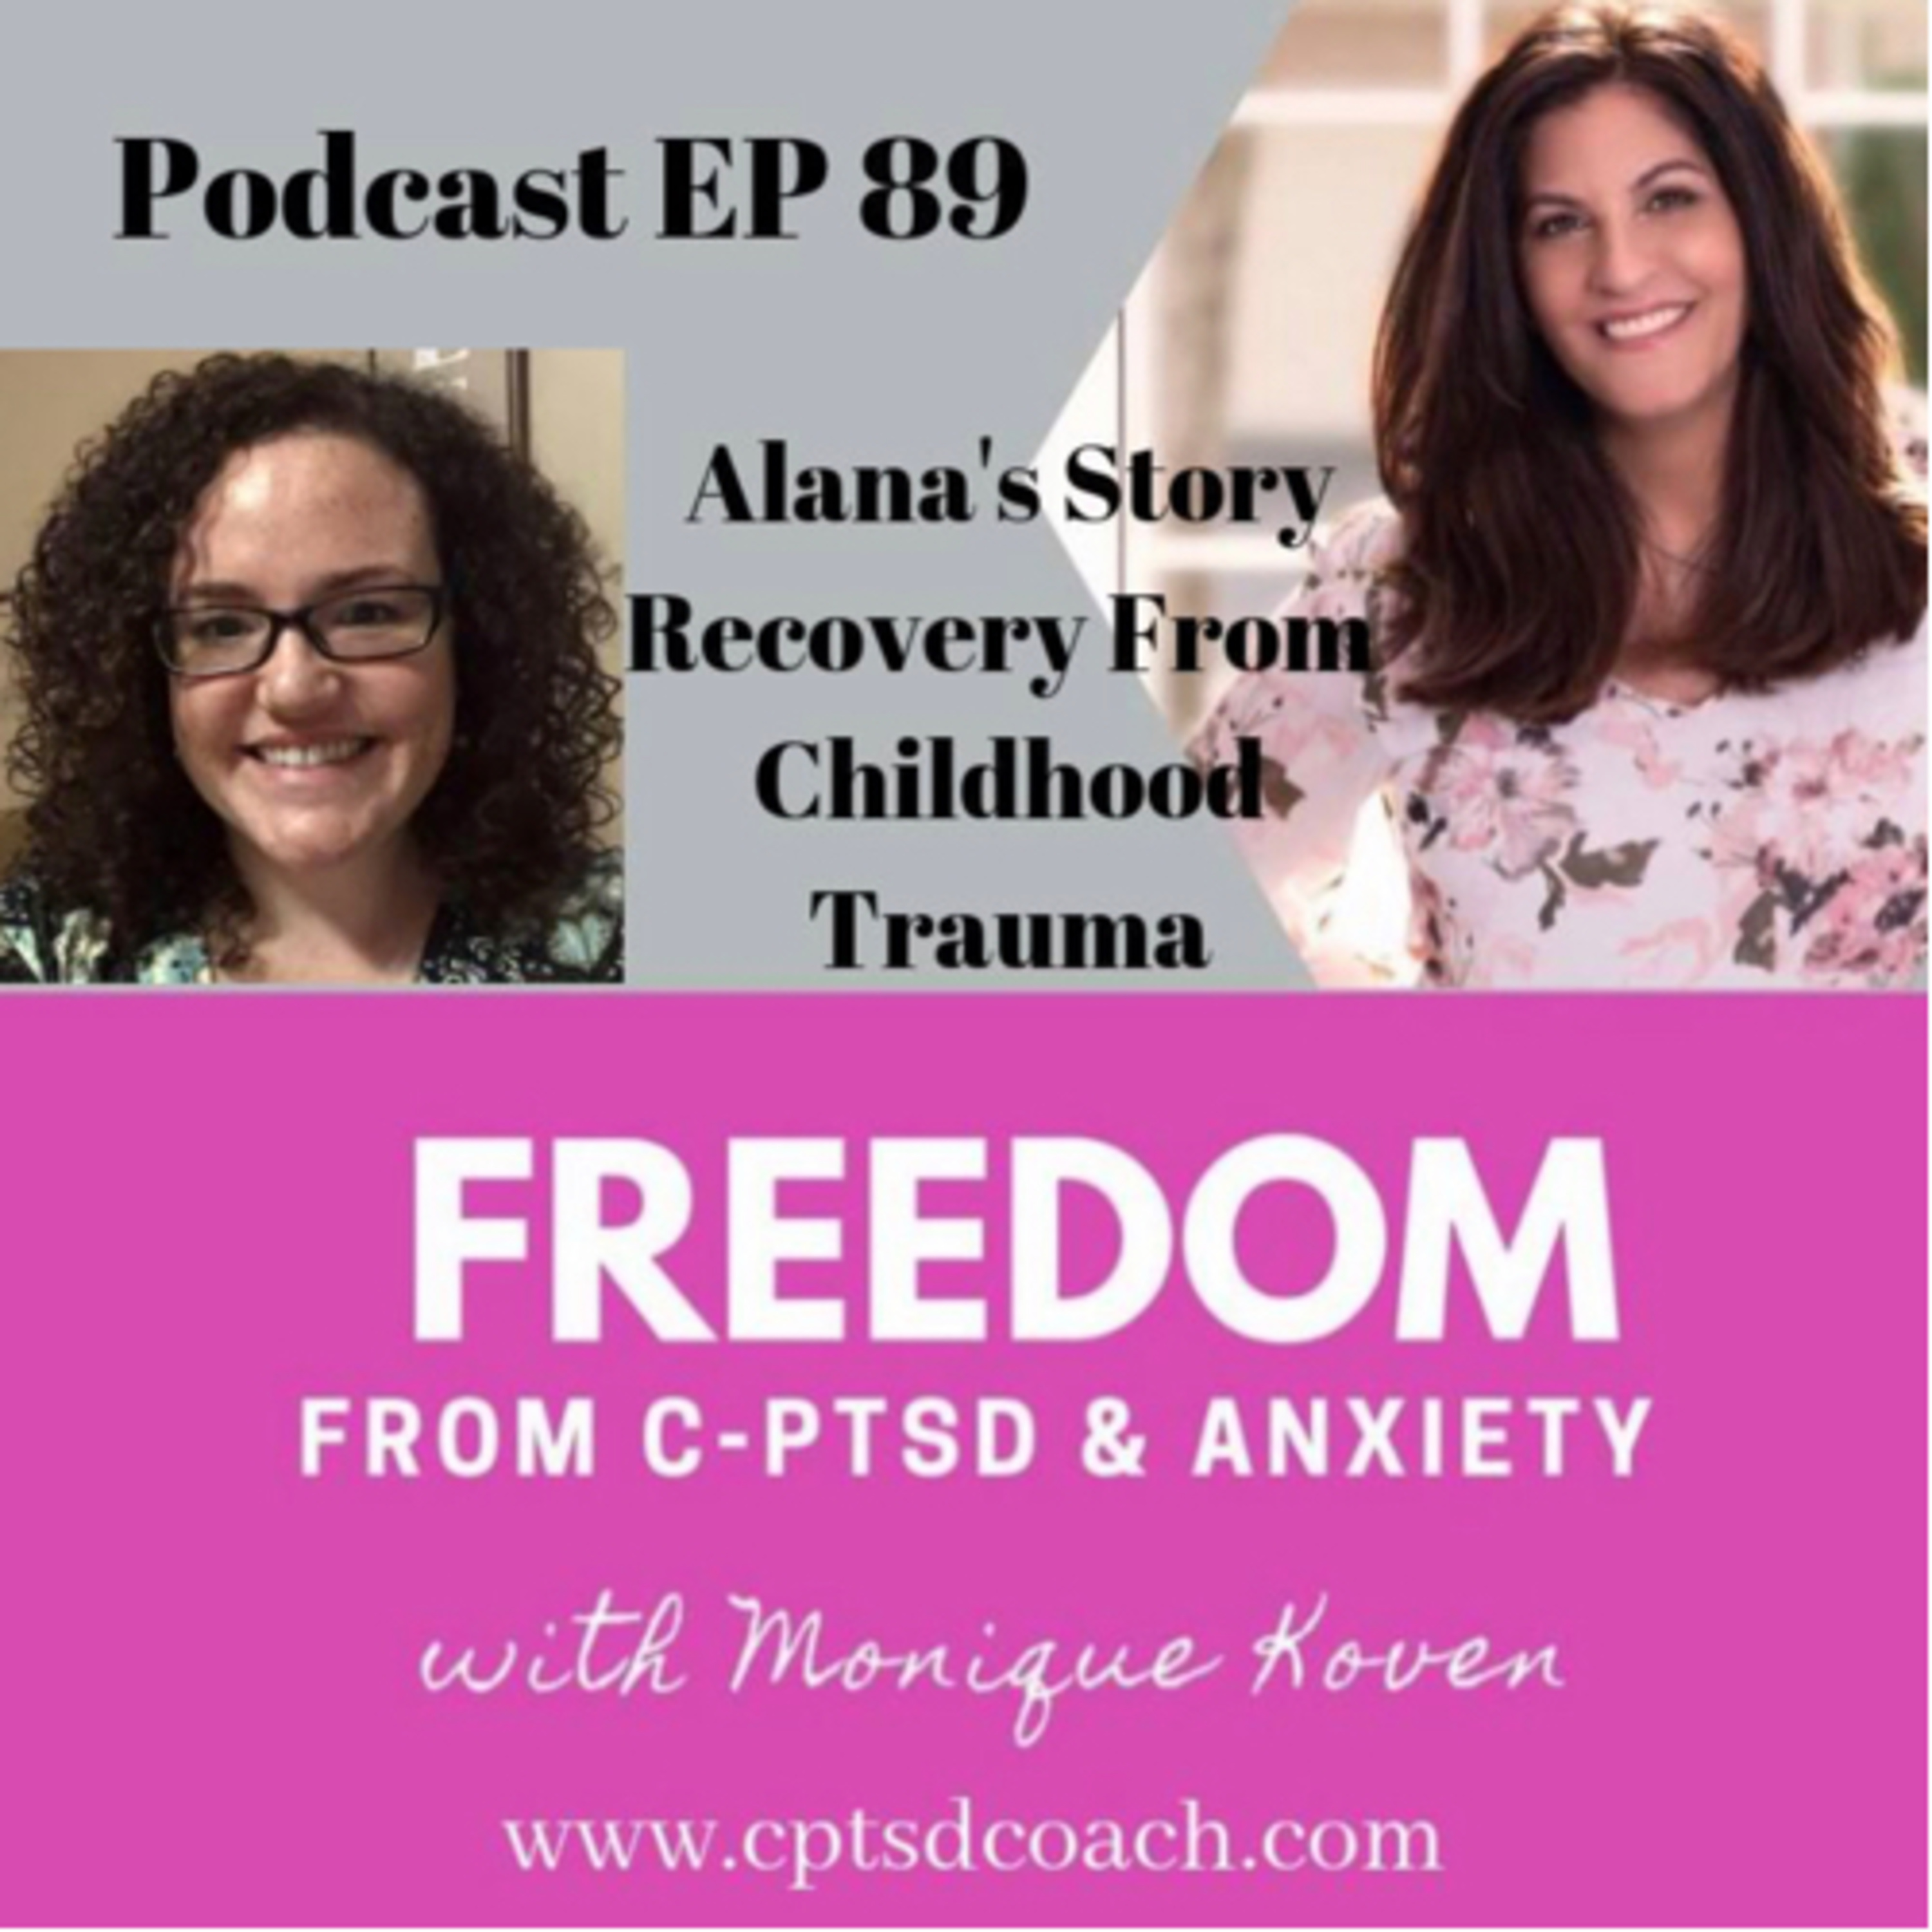 Alana's Story - Recovery From Childhood Trauma.